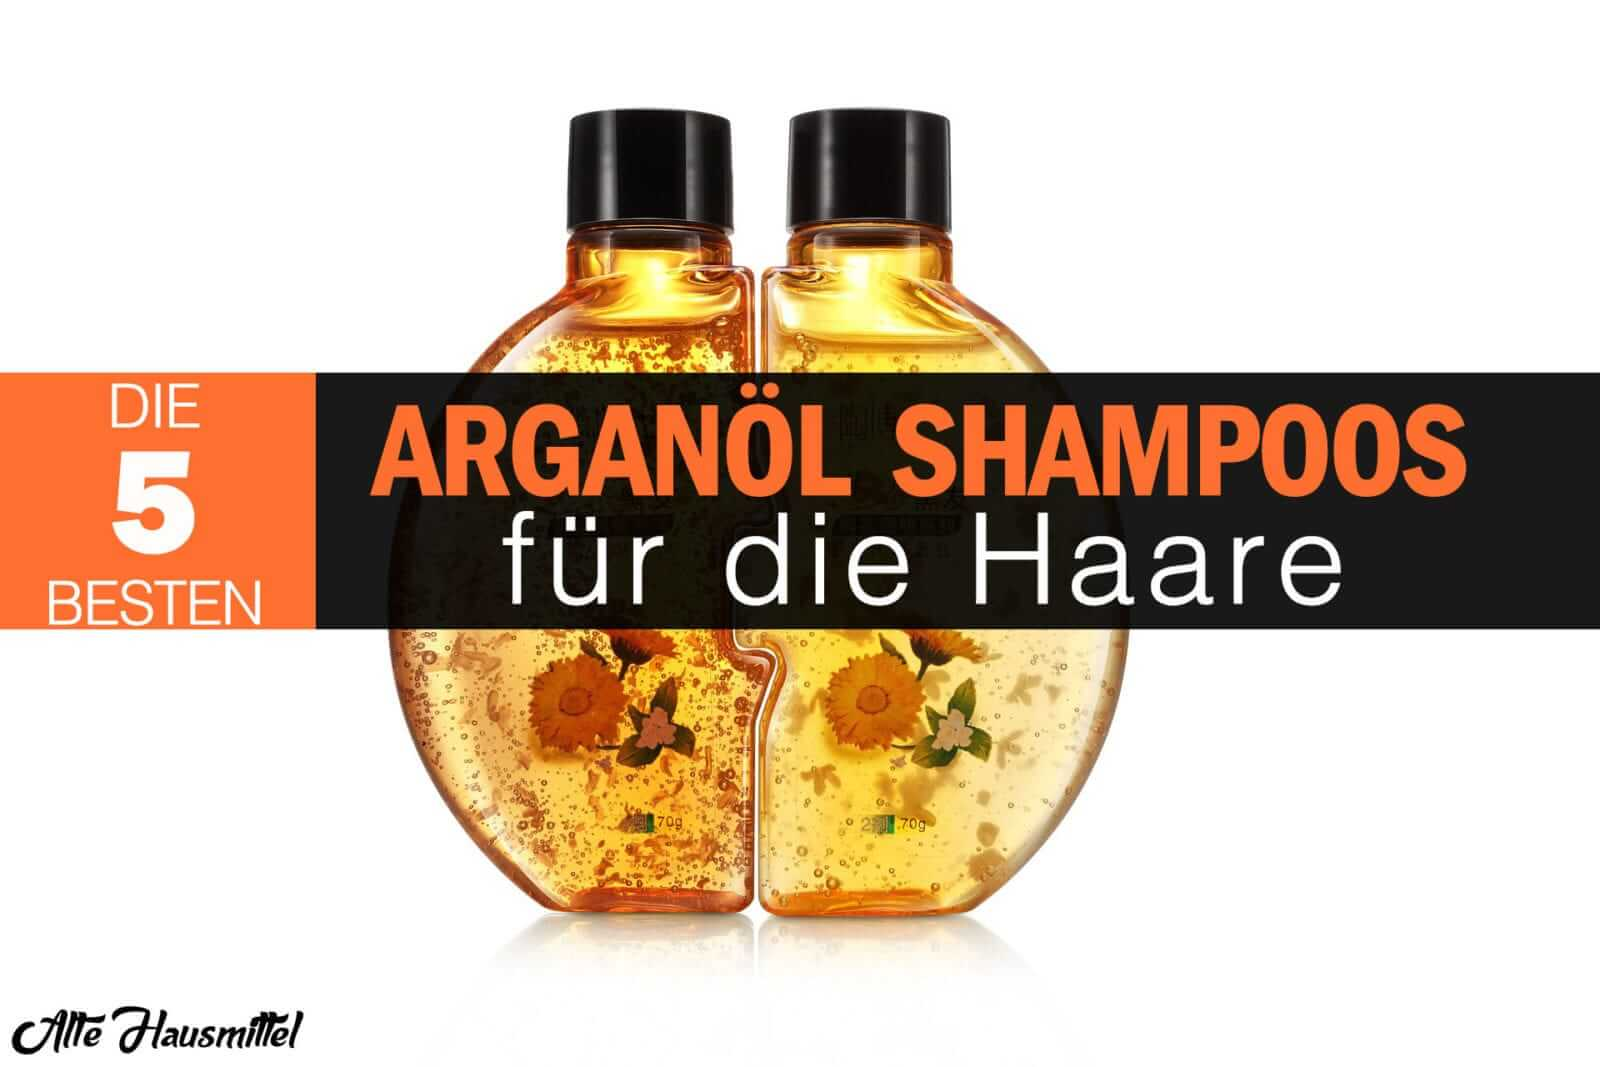 argan l f r die haare die argan l shampoo testsieger. Black Bedroom Furniture Sets. Home Design Ideas